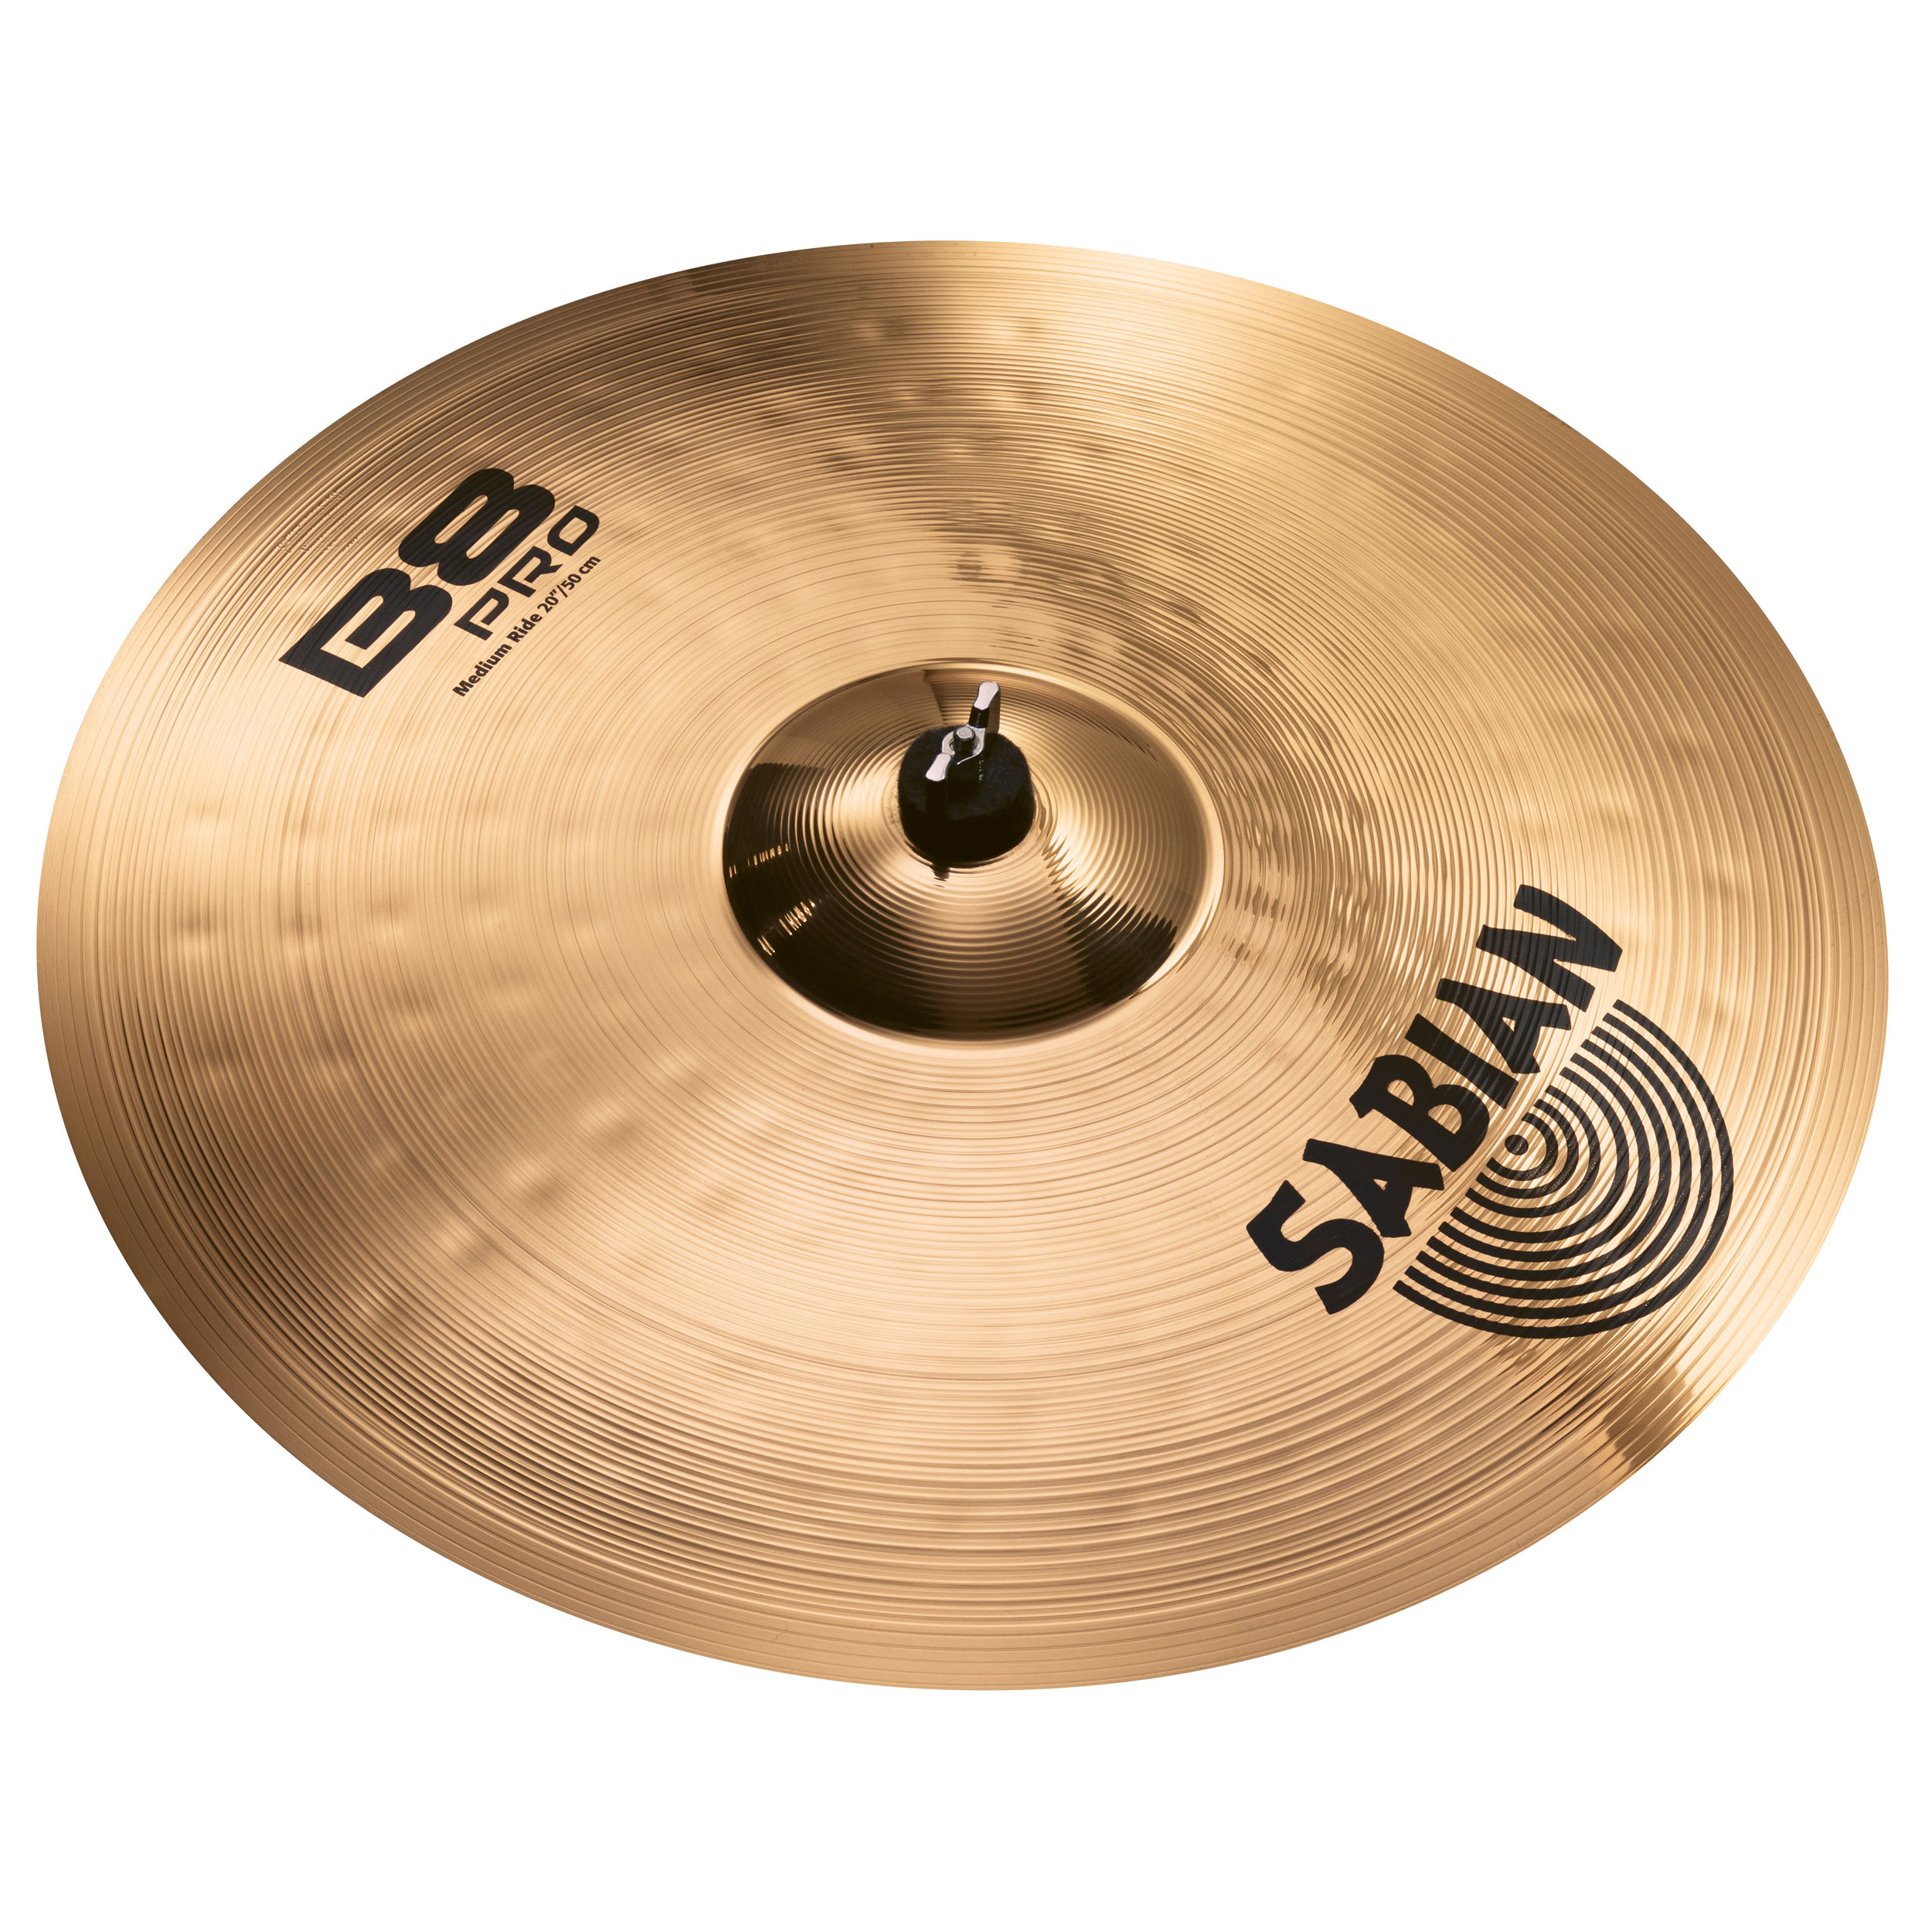 sabian 20 b8 pro medium ride cymbal with brilliant finish 32012b. Black Bedroom Furniture Sets. Home Design Ideas